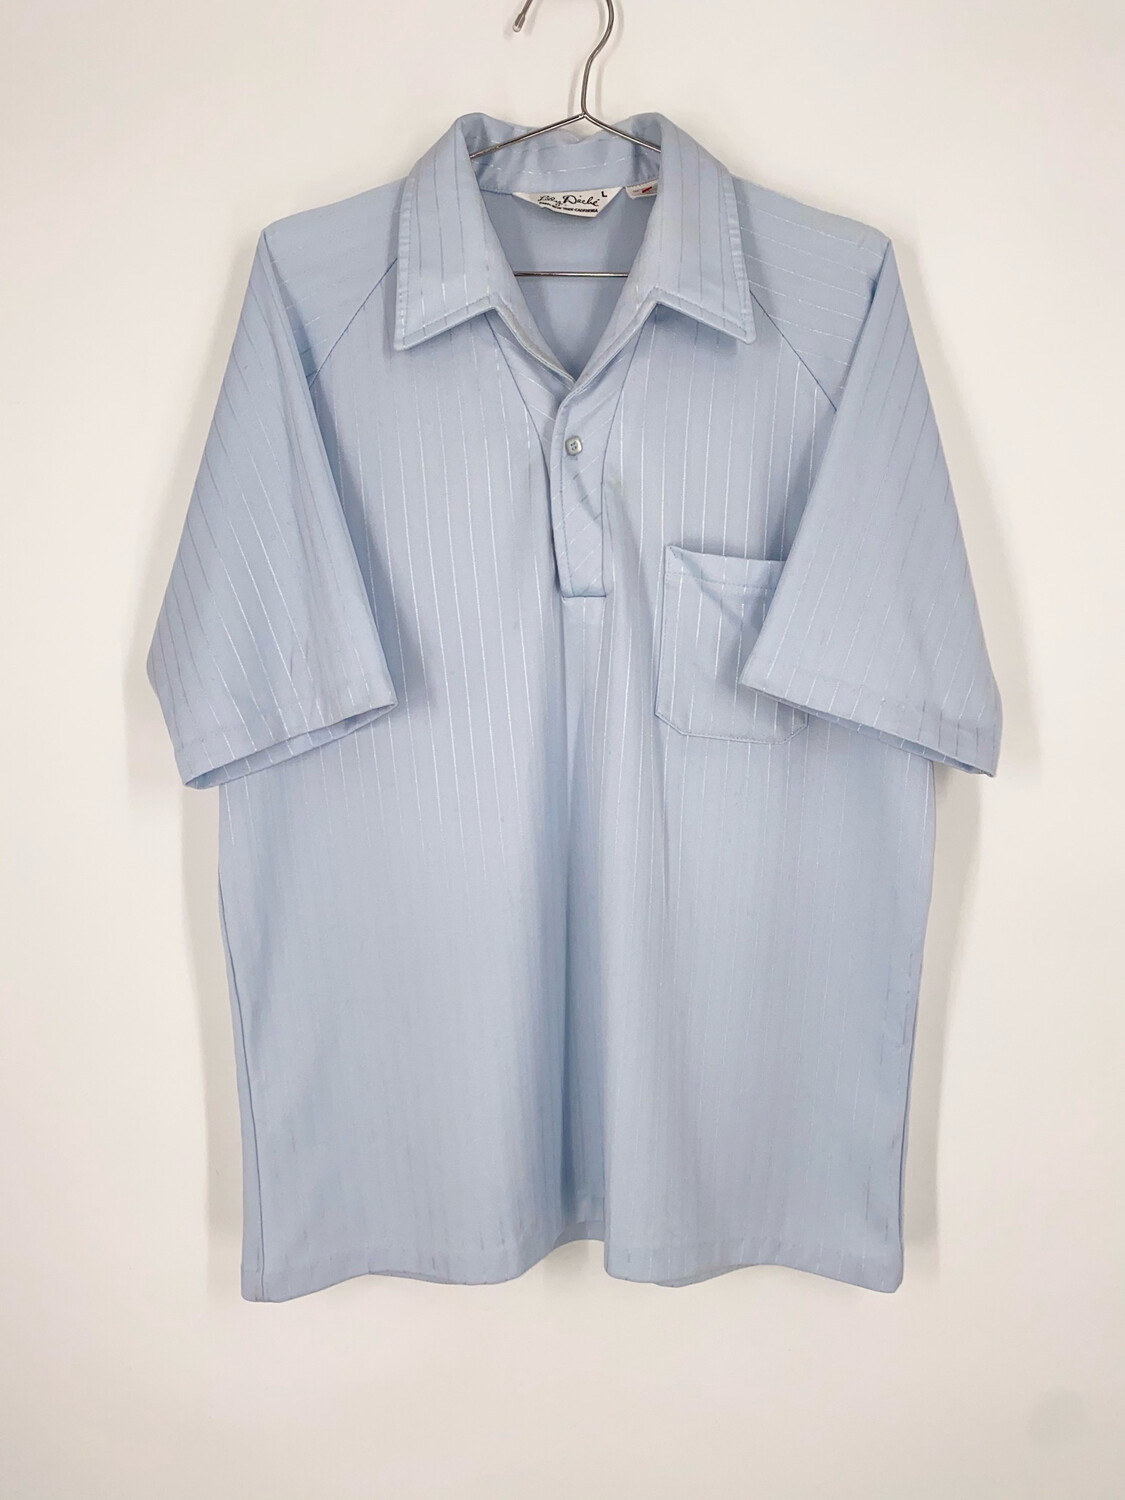 Lilly Daché Pinstriped Blue Short Sleeve Button Up Size L